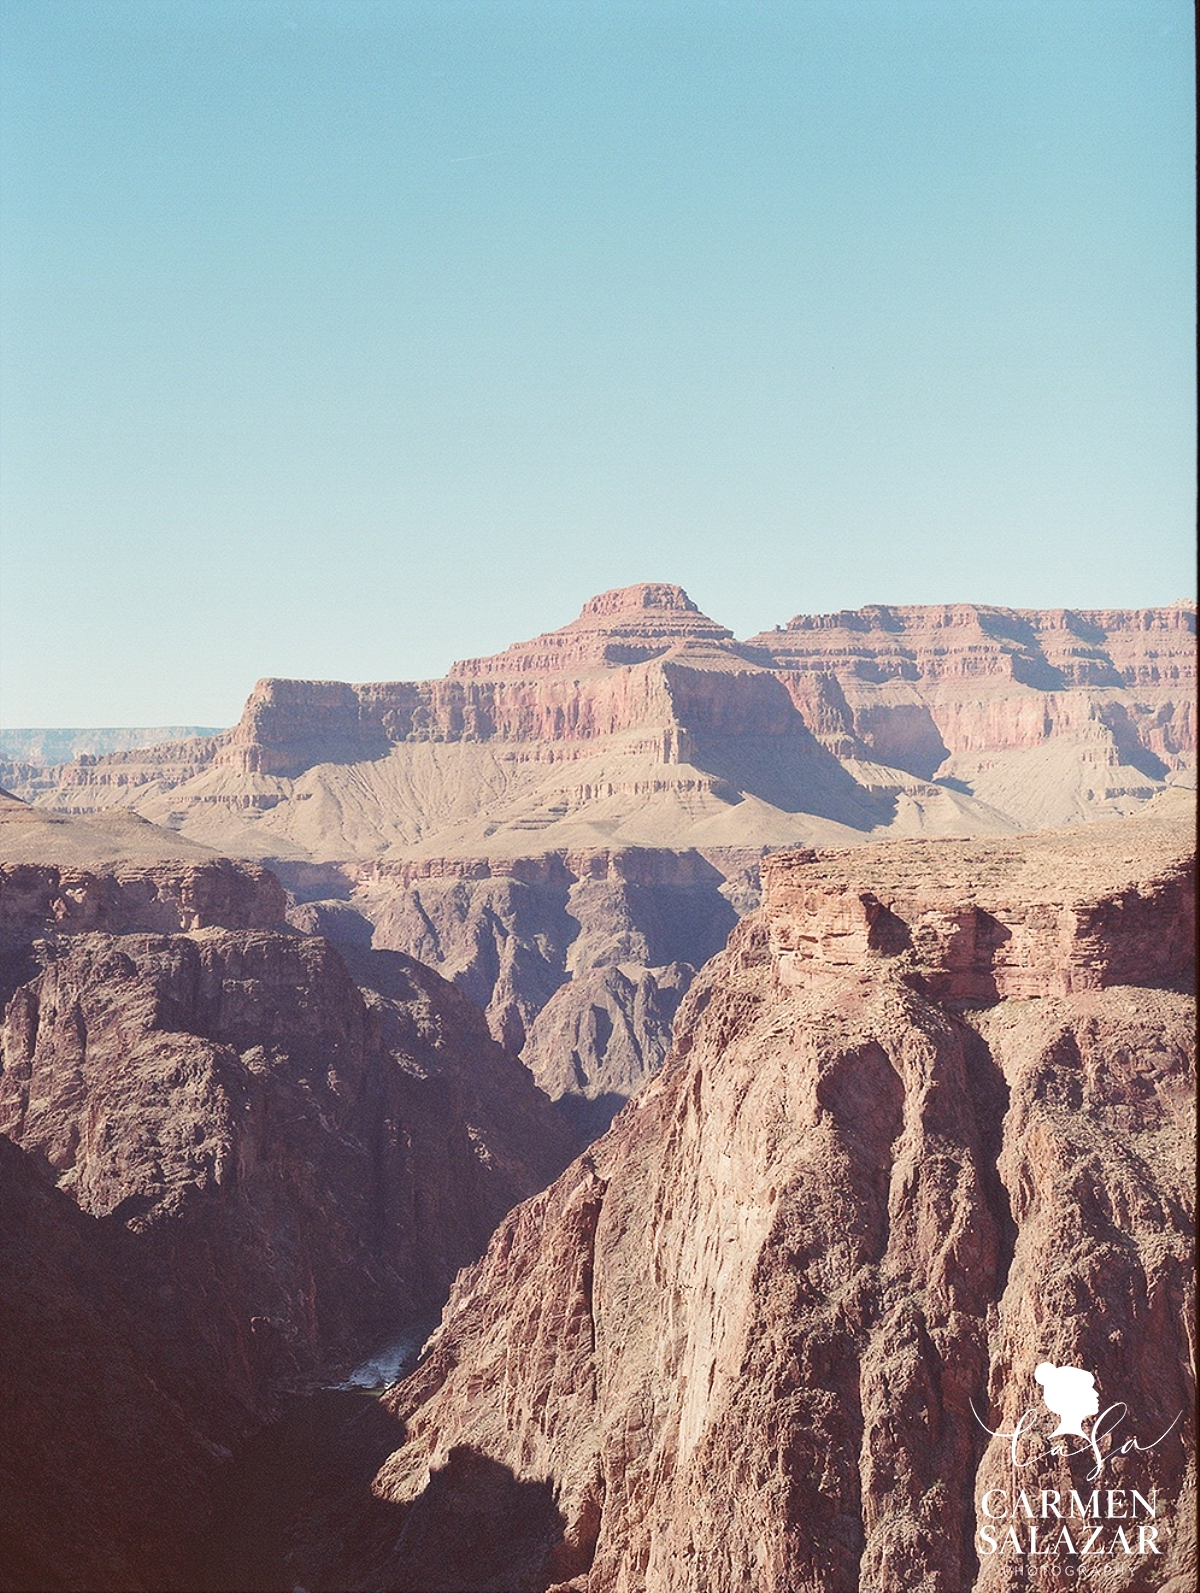 hiking at grand canyon with camera by Carmen Salazar